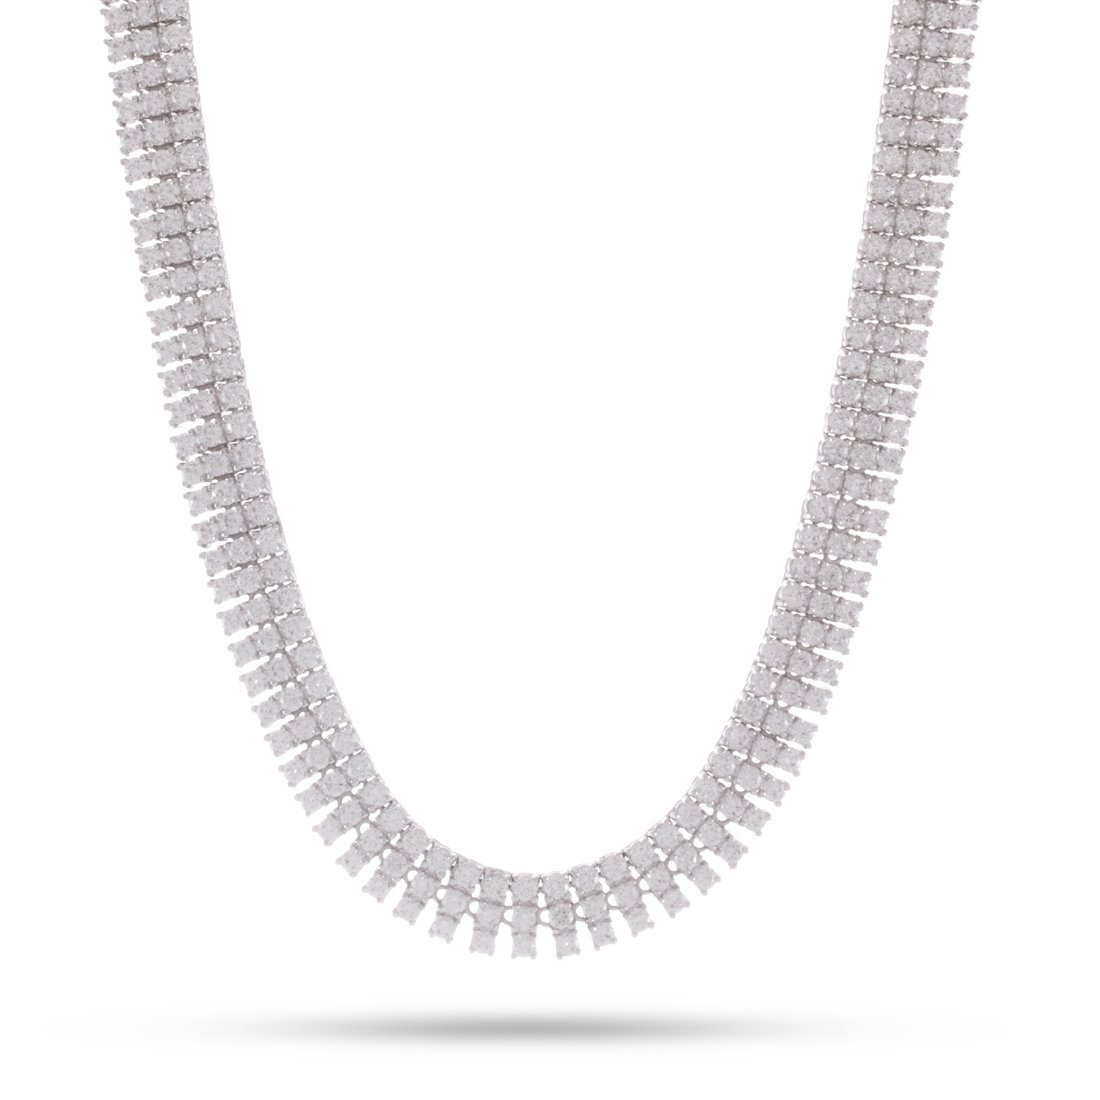 Image of 3 Row White Gold Tennis Necklace